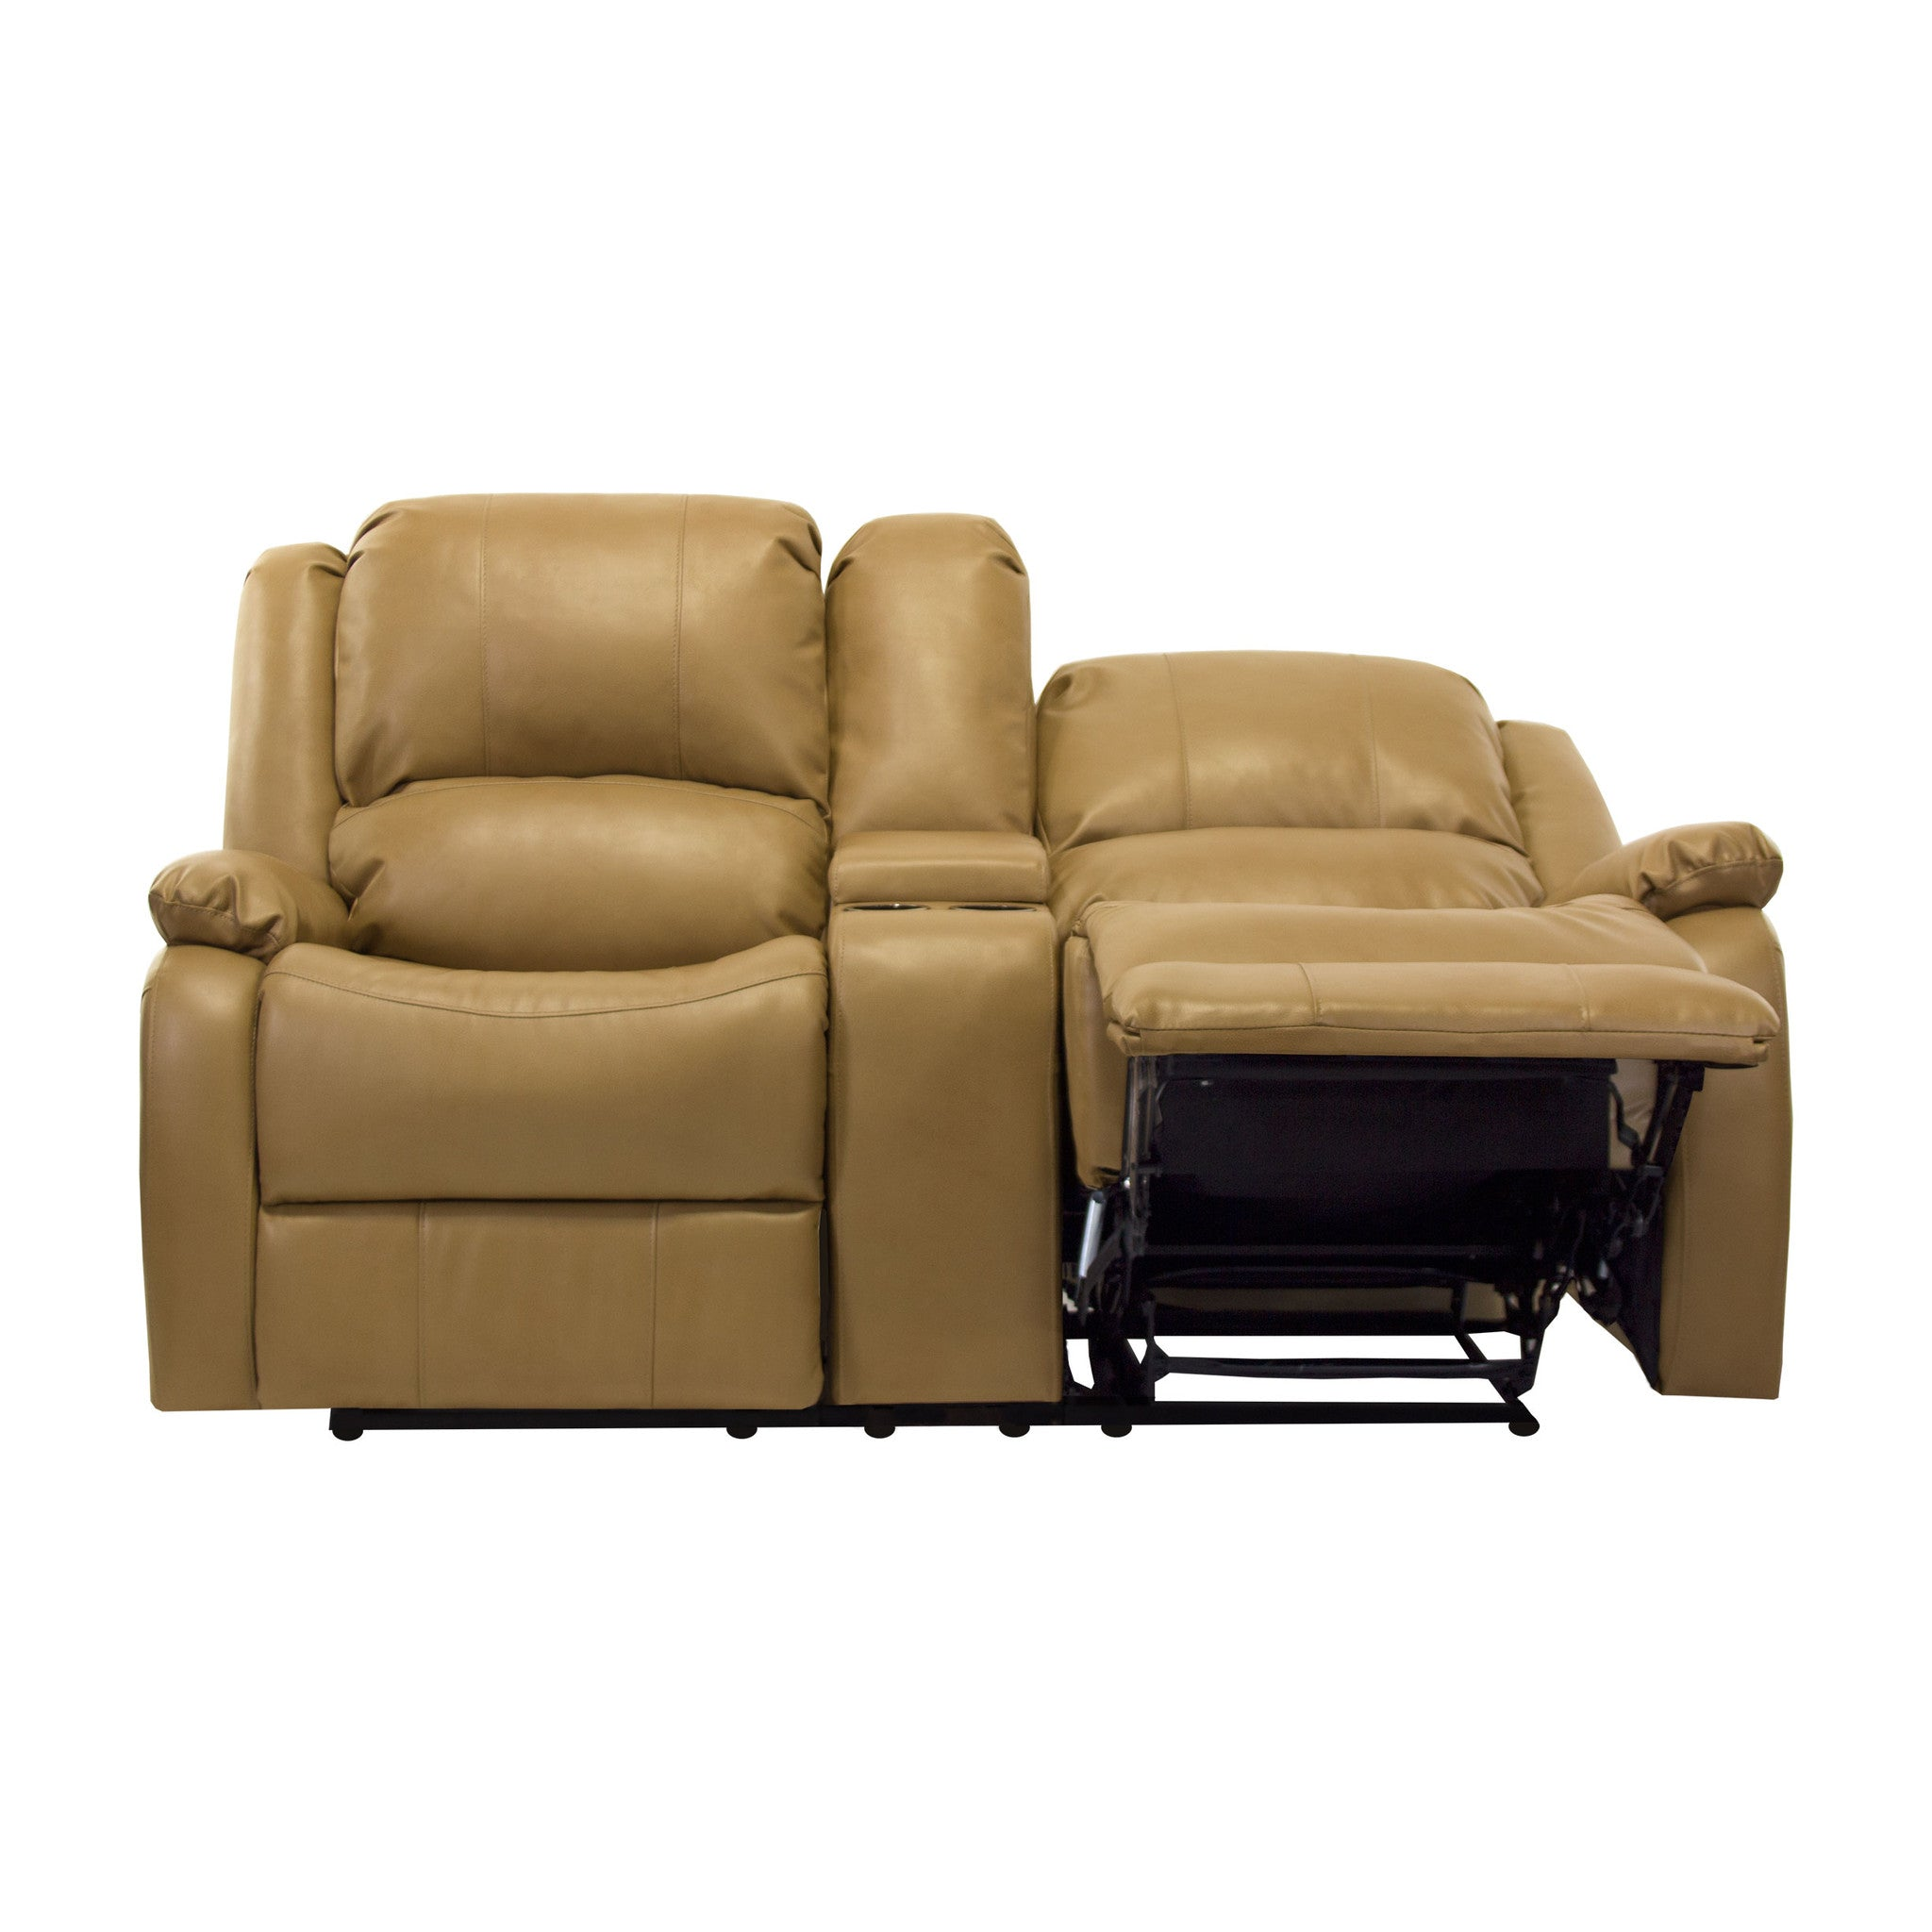 ... RecPro Charles 67  Double RV Wall Hugger Recliner Sofa w/ Console Toffee (Available rv furniture  sc 1 st  RestoreRV.com & RecPro™ Recliner Sofa | RestoreRV | RestoreRV.com islam-shia.org